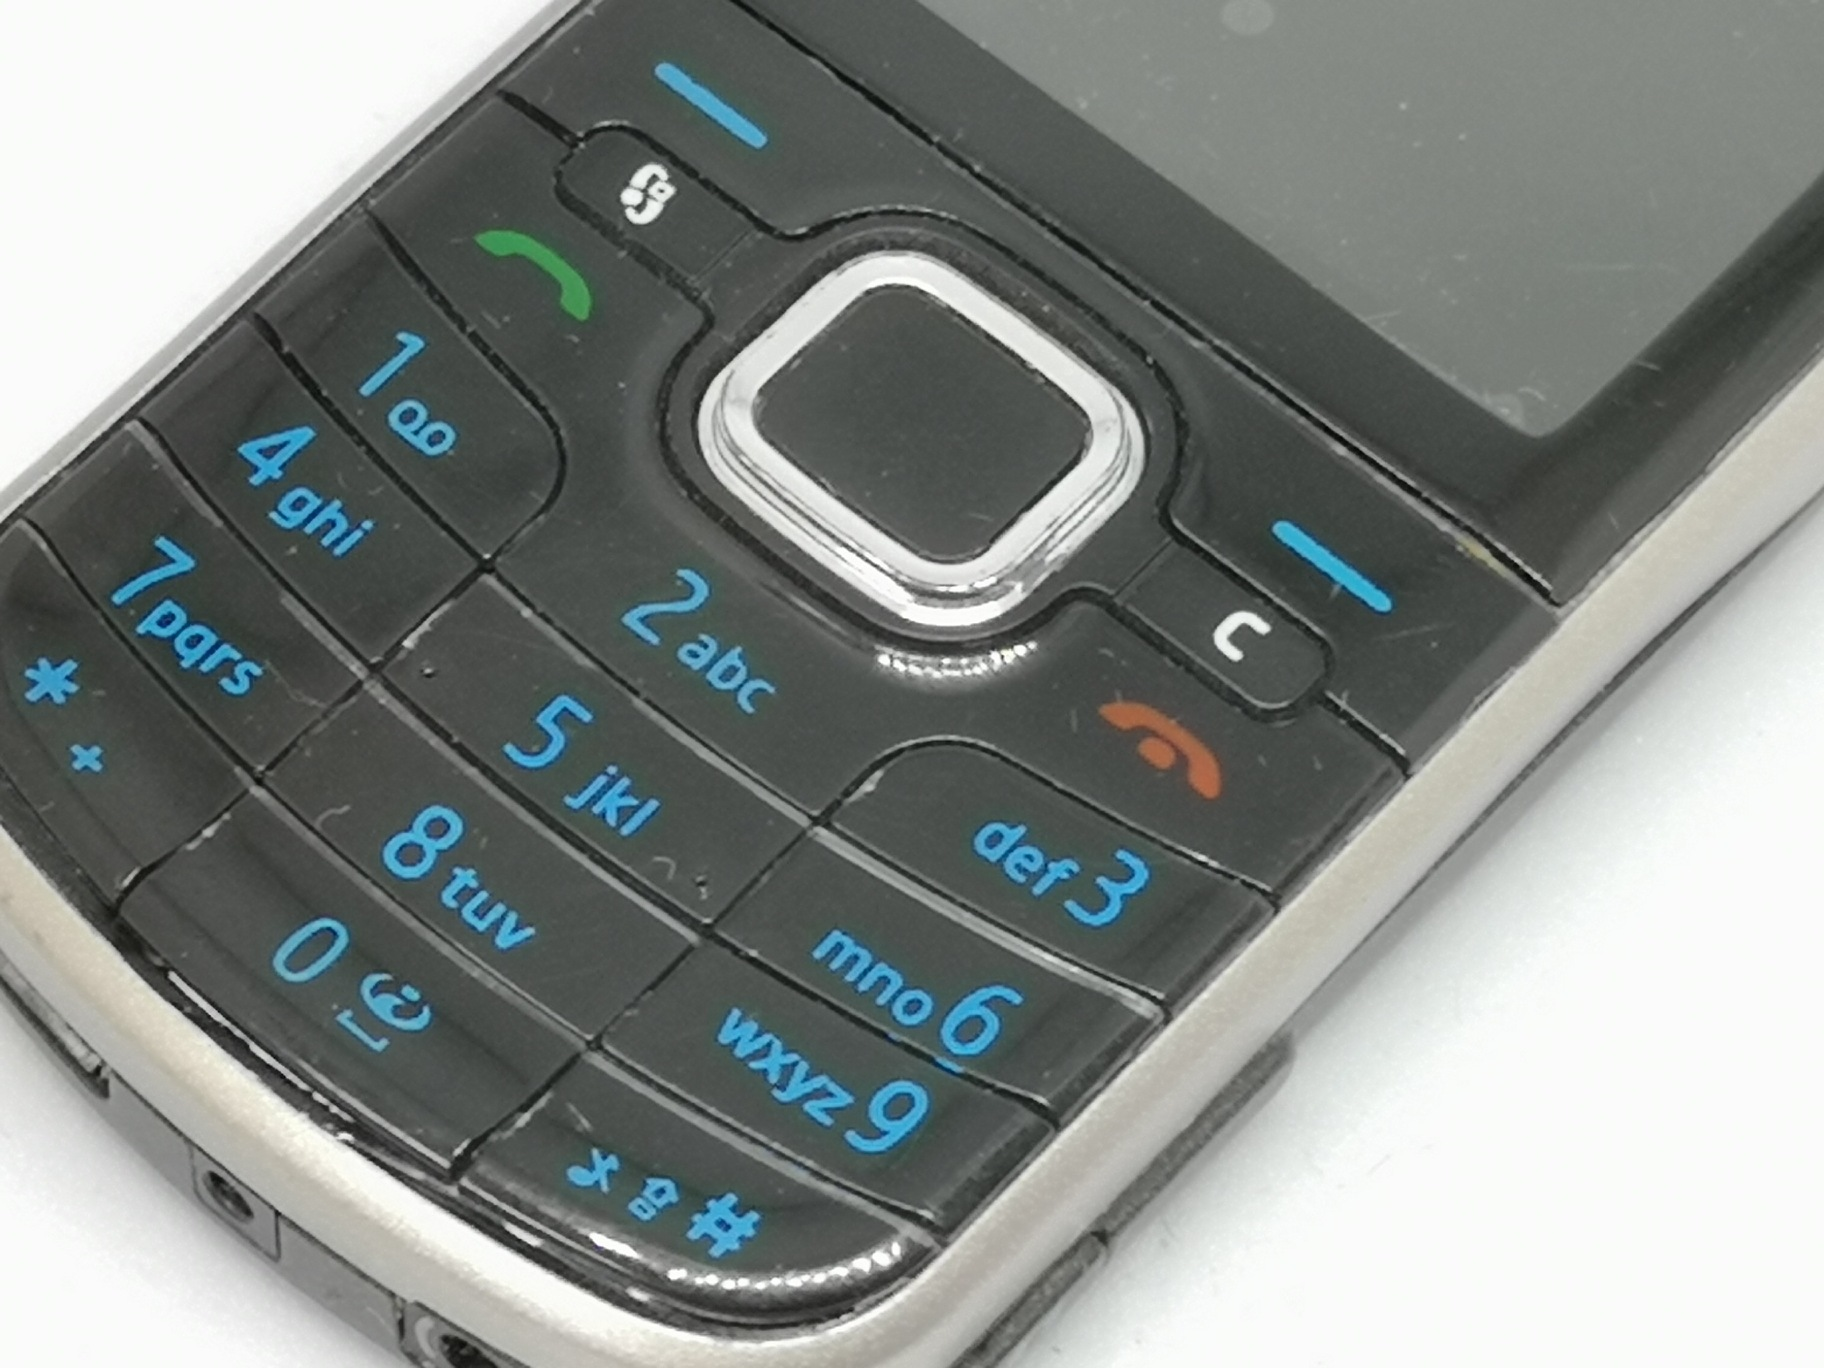 Nokia 6210 Navigator Review - Slide Mobile With GPS